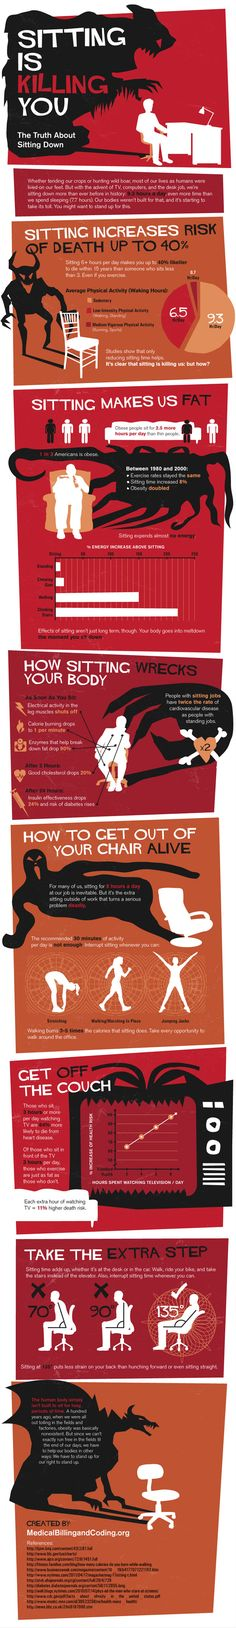 Our New Sitting Disease..... tips to help